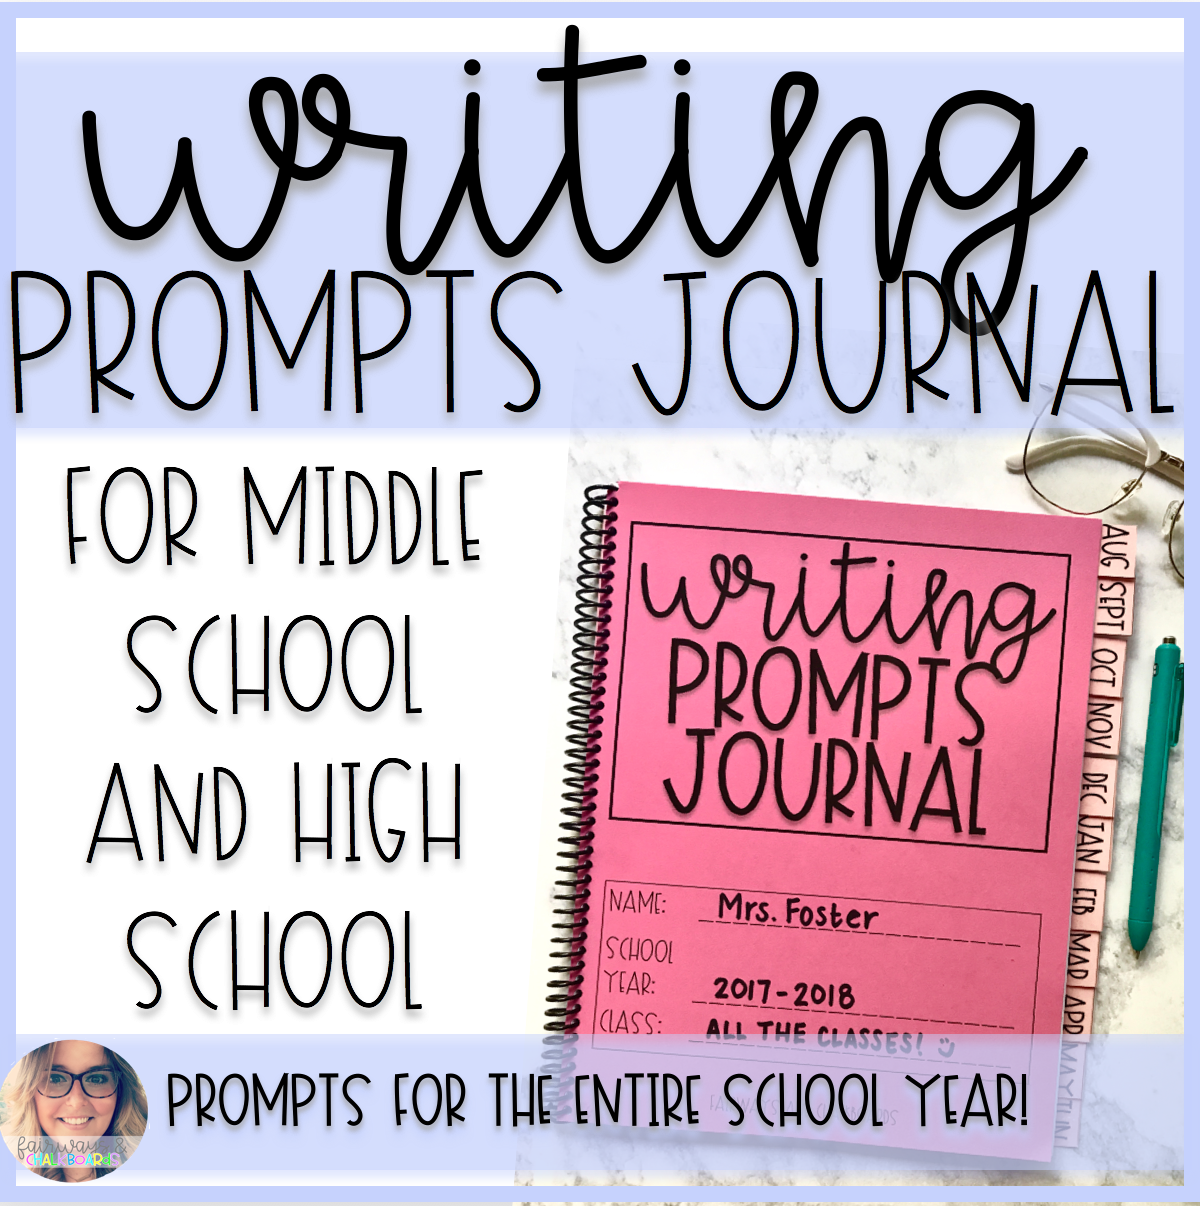 Year Long Weekly Writing Prompts Journal For Middle School